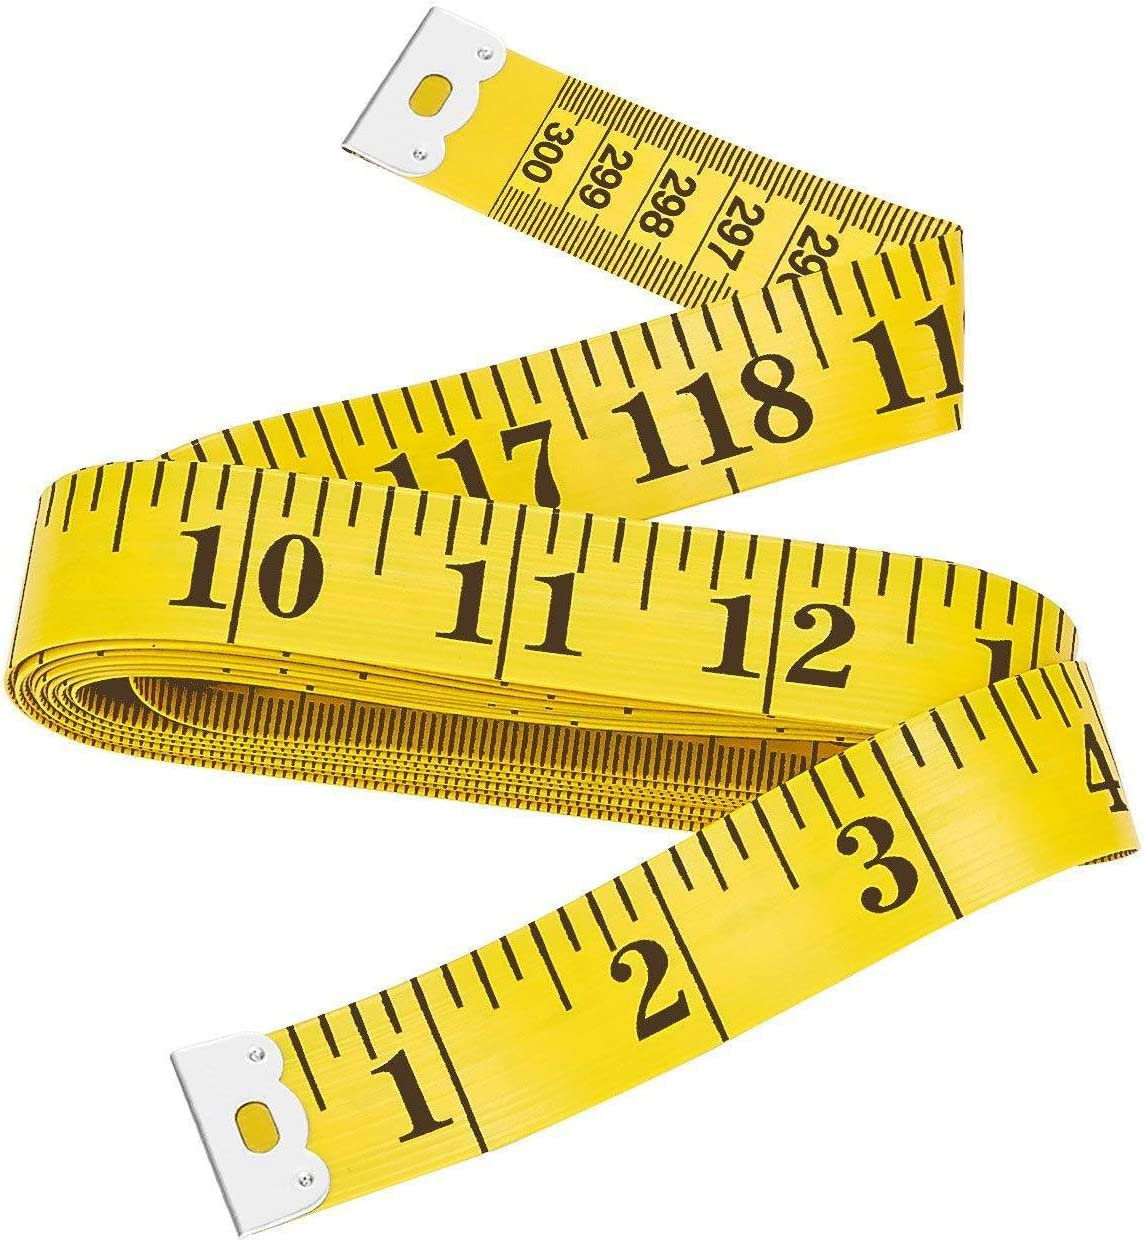 Cotchear Soft 120inch Credence Max 86% OFF 3 Meter Tailor Body Measuring Sewing Tape